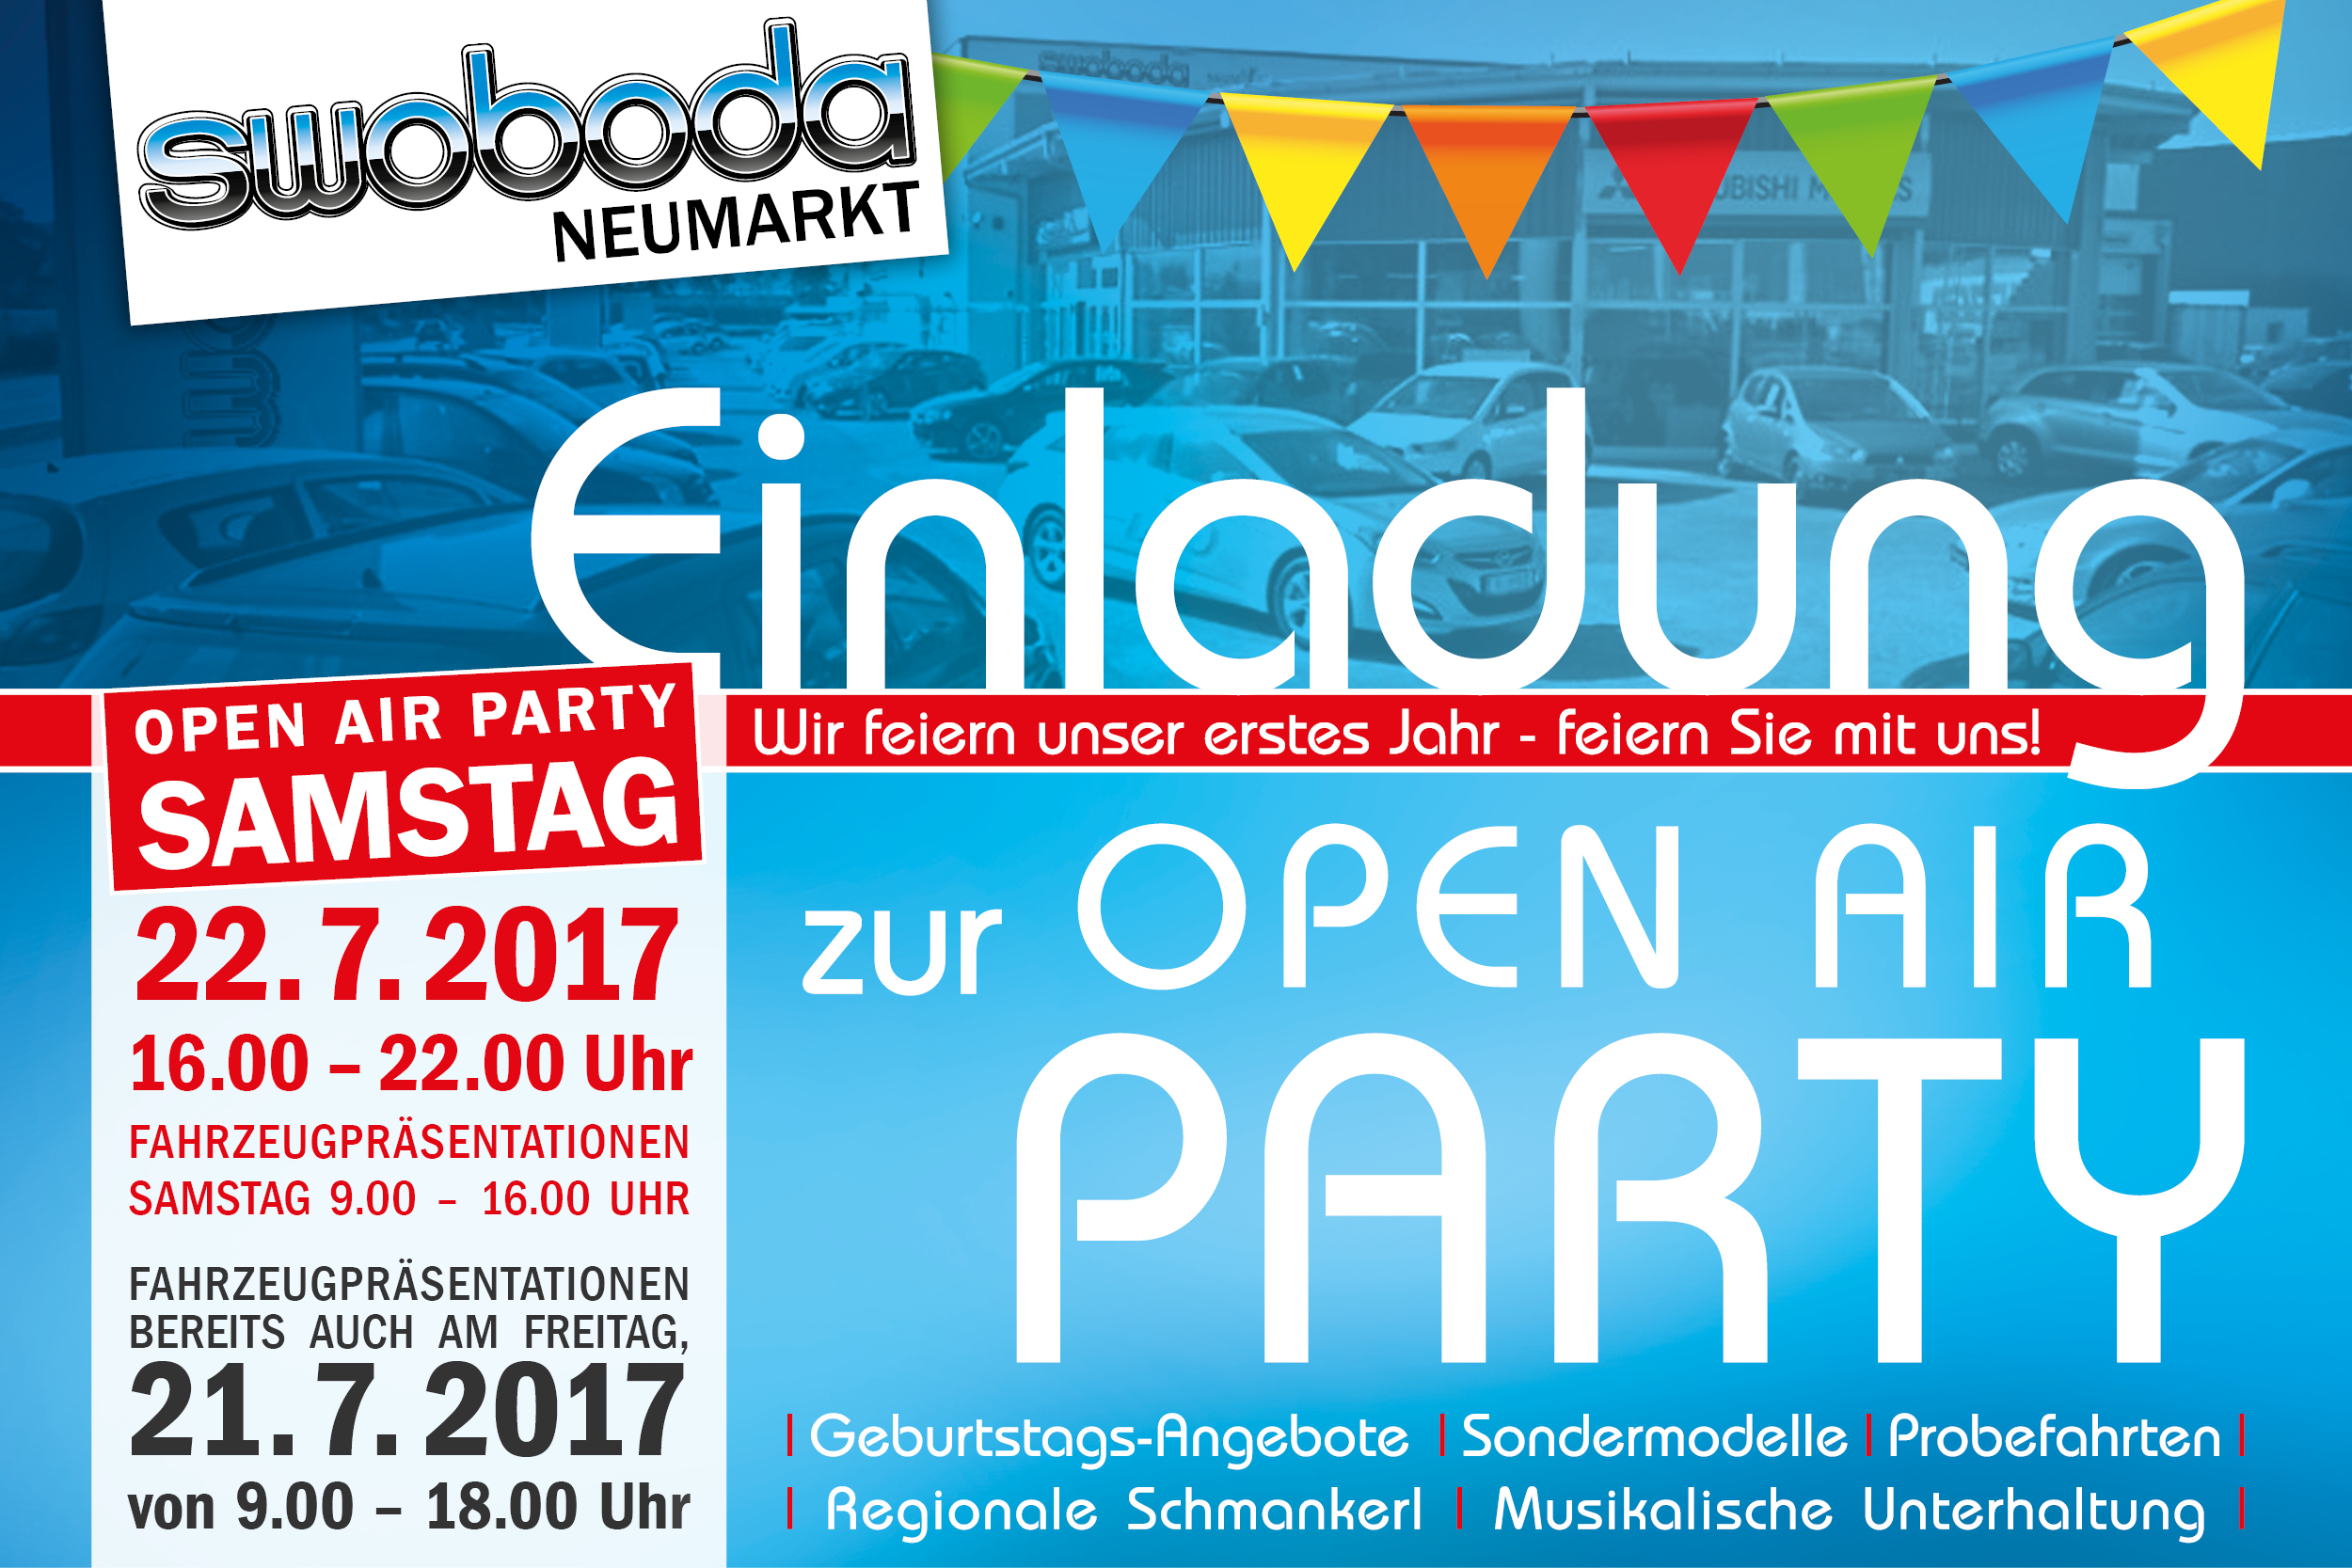 Swoboda OPEN AIR PARTY